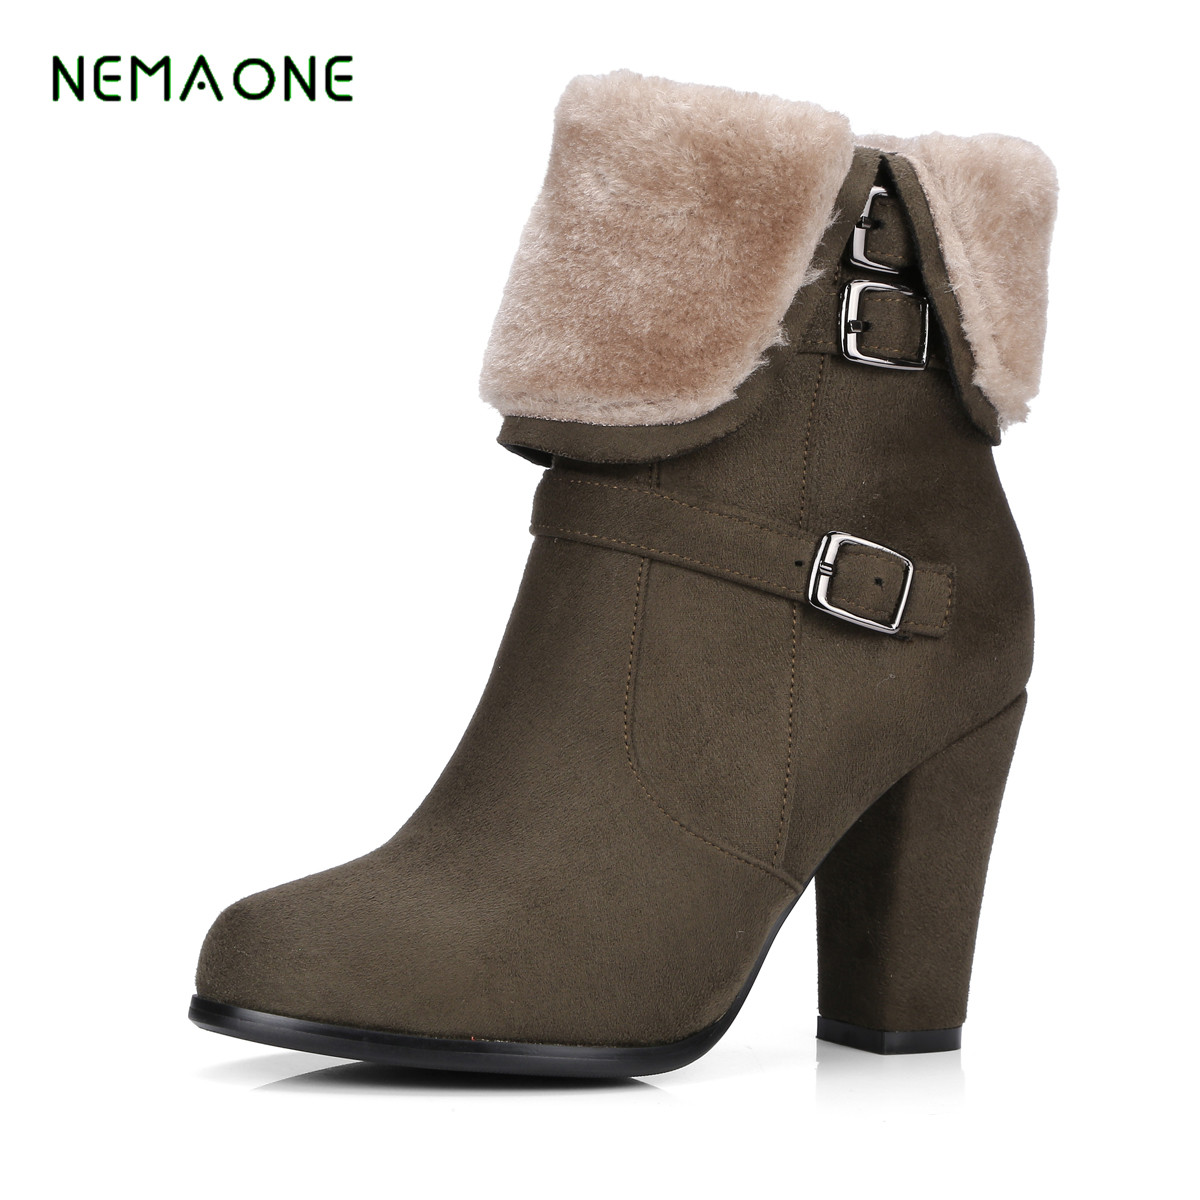 NEMAONE 2017 Women Shoes Buckles Warm Black Gray Short Ankle Snow Boots High Heels Lady Thick Boot  Female Winter Boots nemaone 2017 gladiator snow boots women flats heels half short boot ladies warm plush winter boots leisure shoes woman